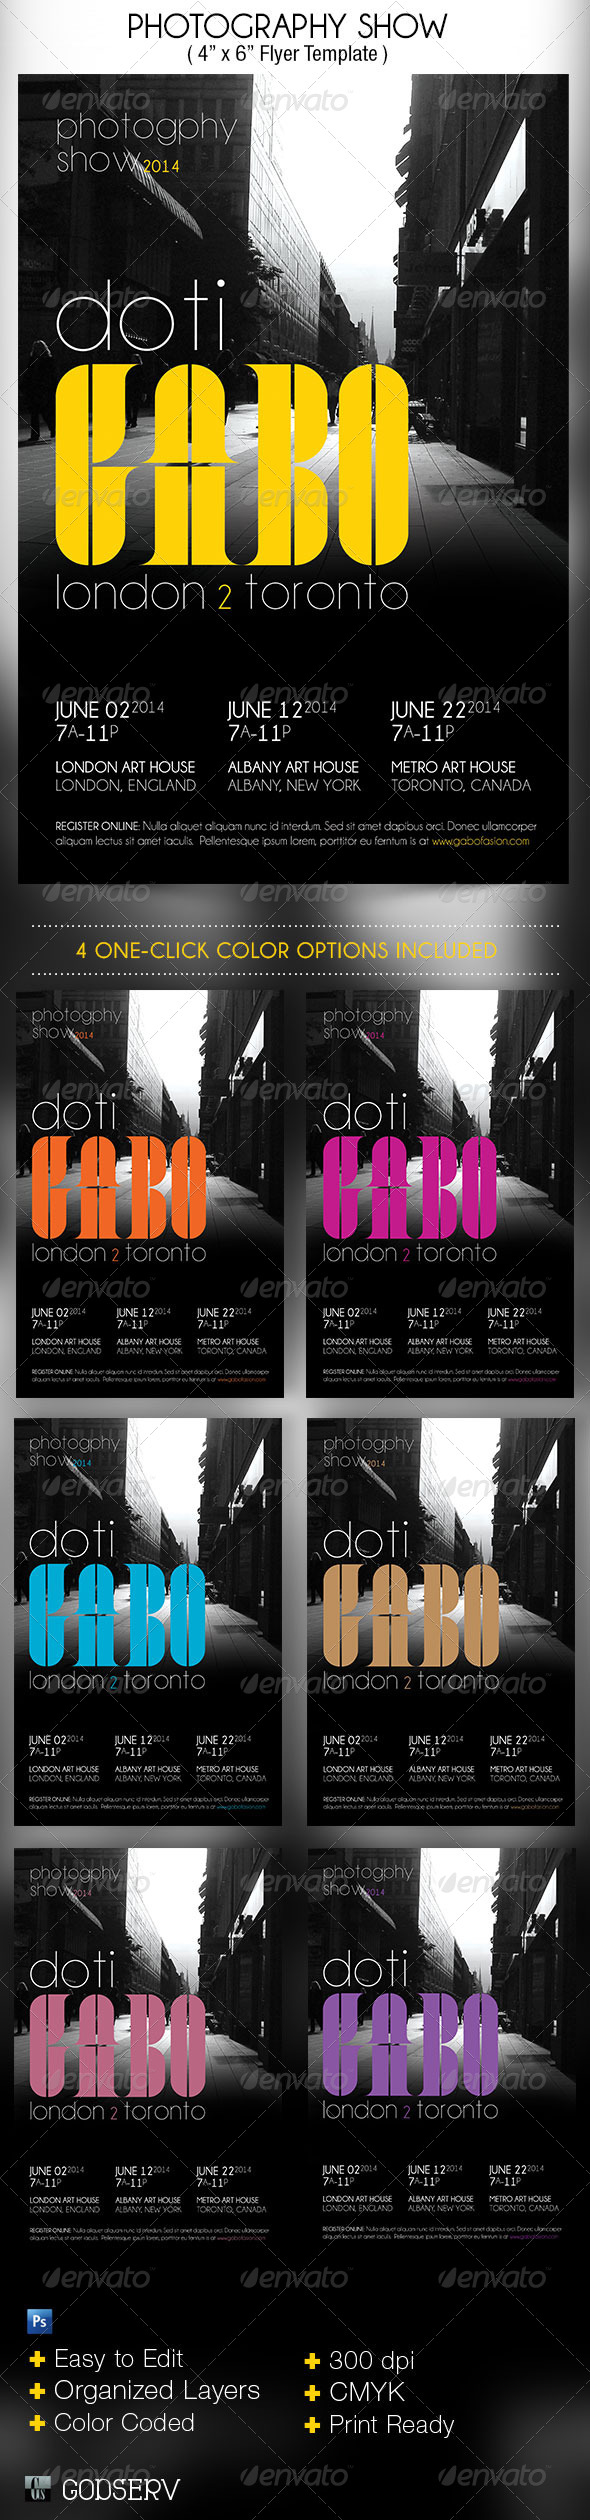 Photography Show Flyer Template - Events Flyers